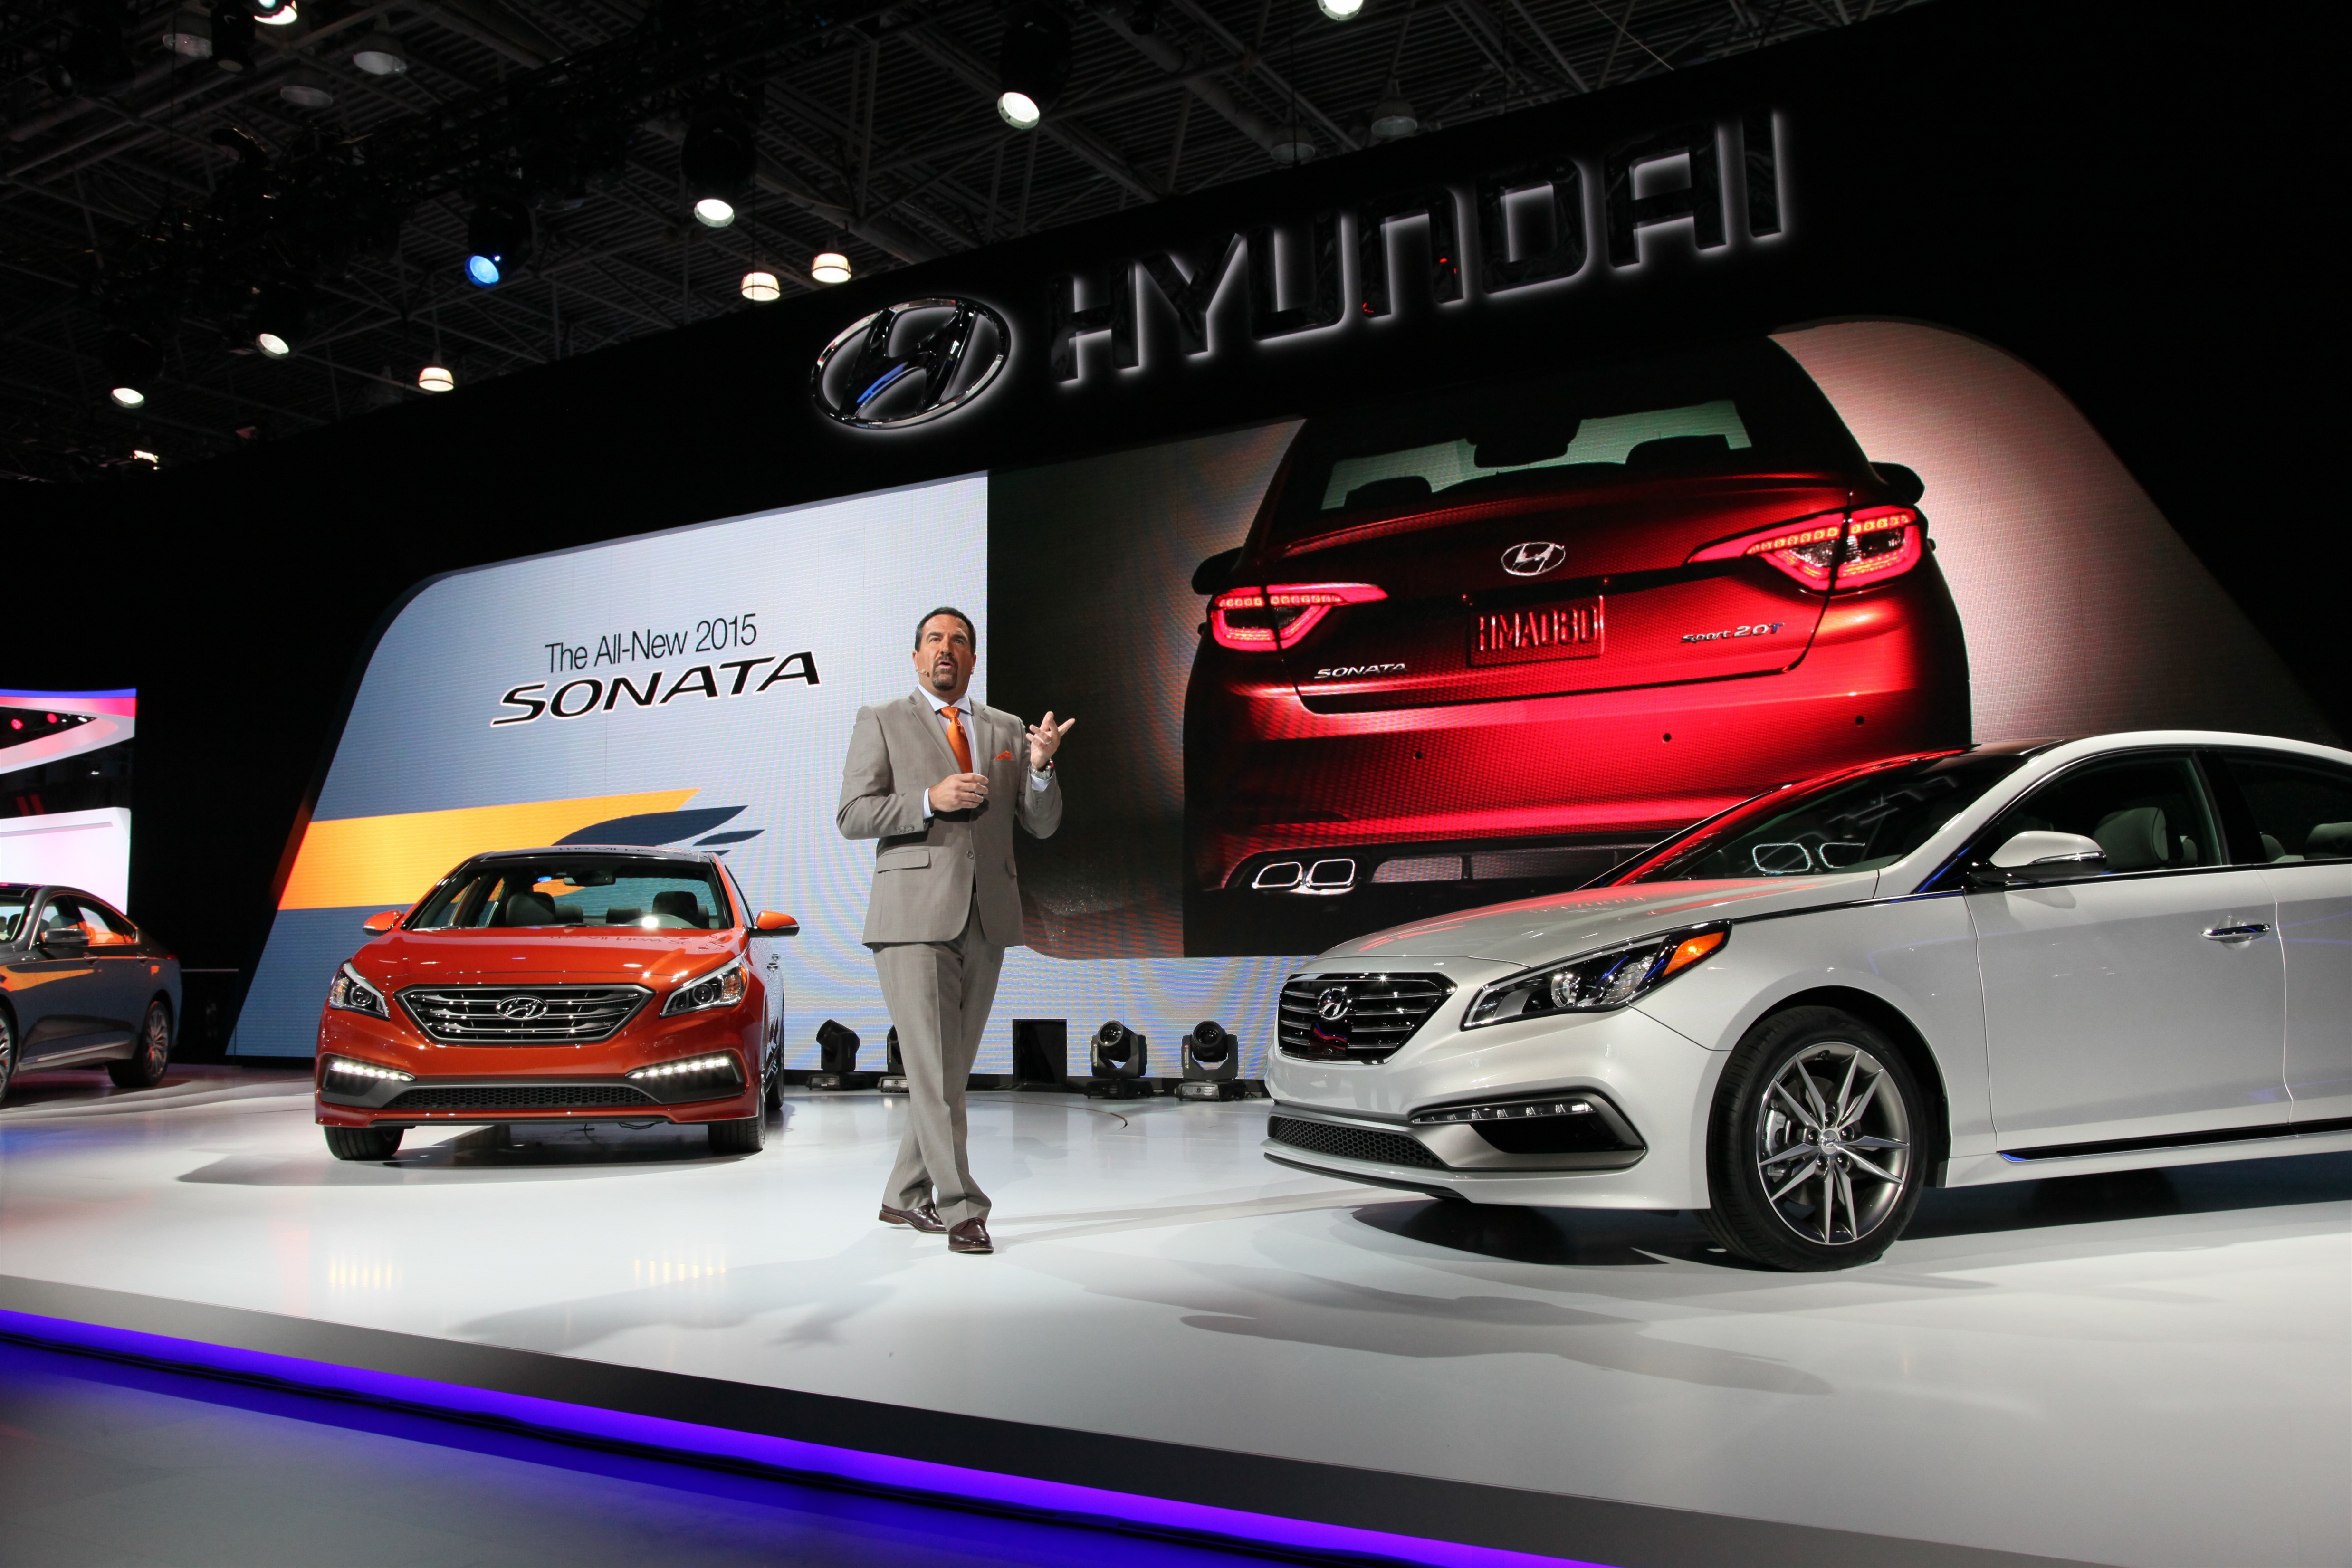 firm analysis hyundai motor america View daniel han's profile on new business innovation and strategy at hyundai motor america location introduction to business performance analysis viewers.